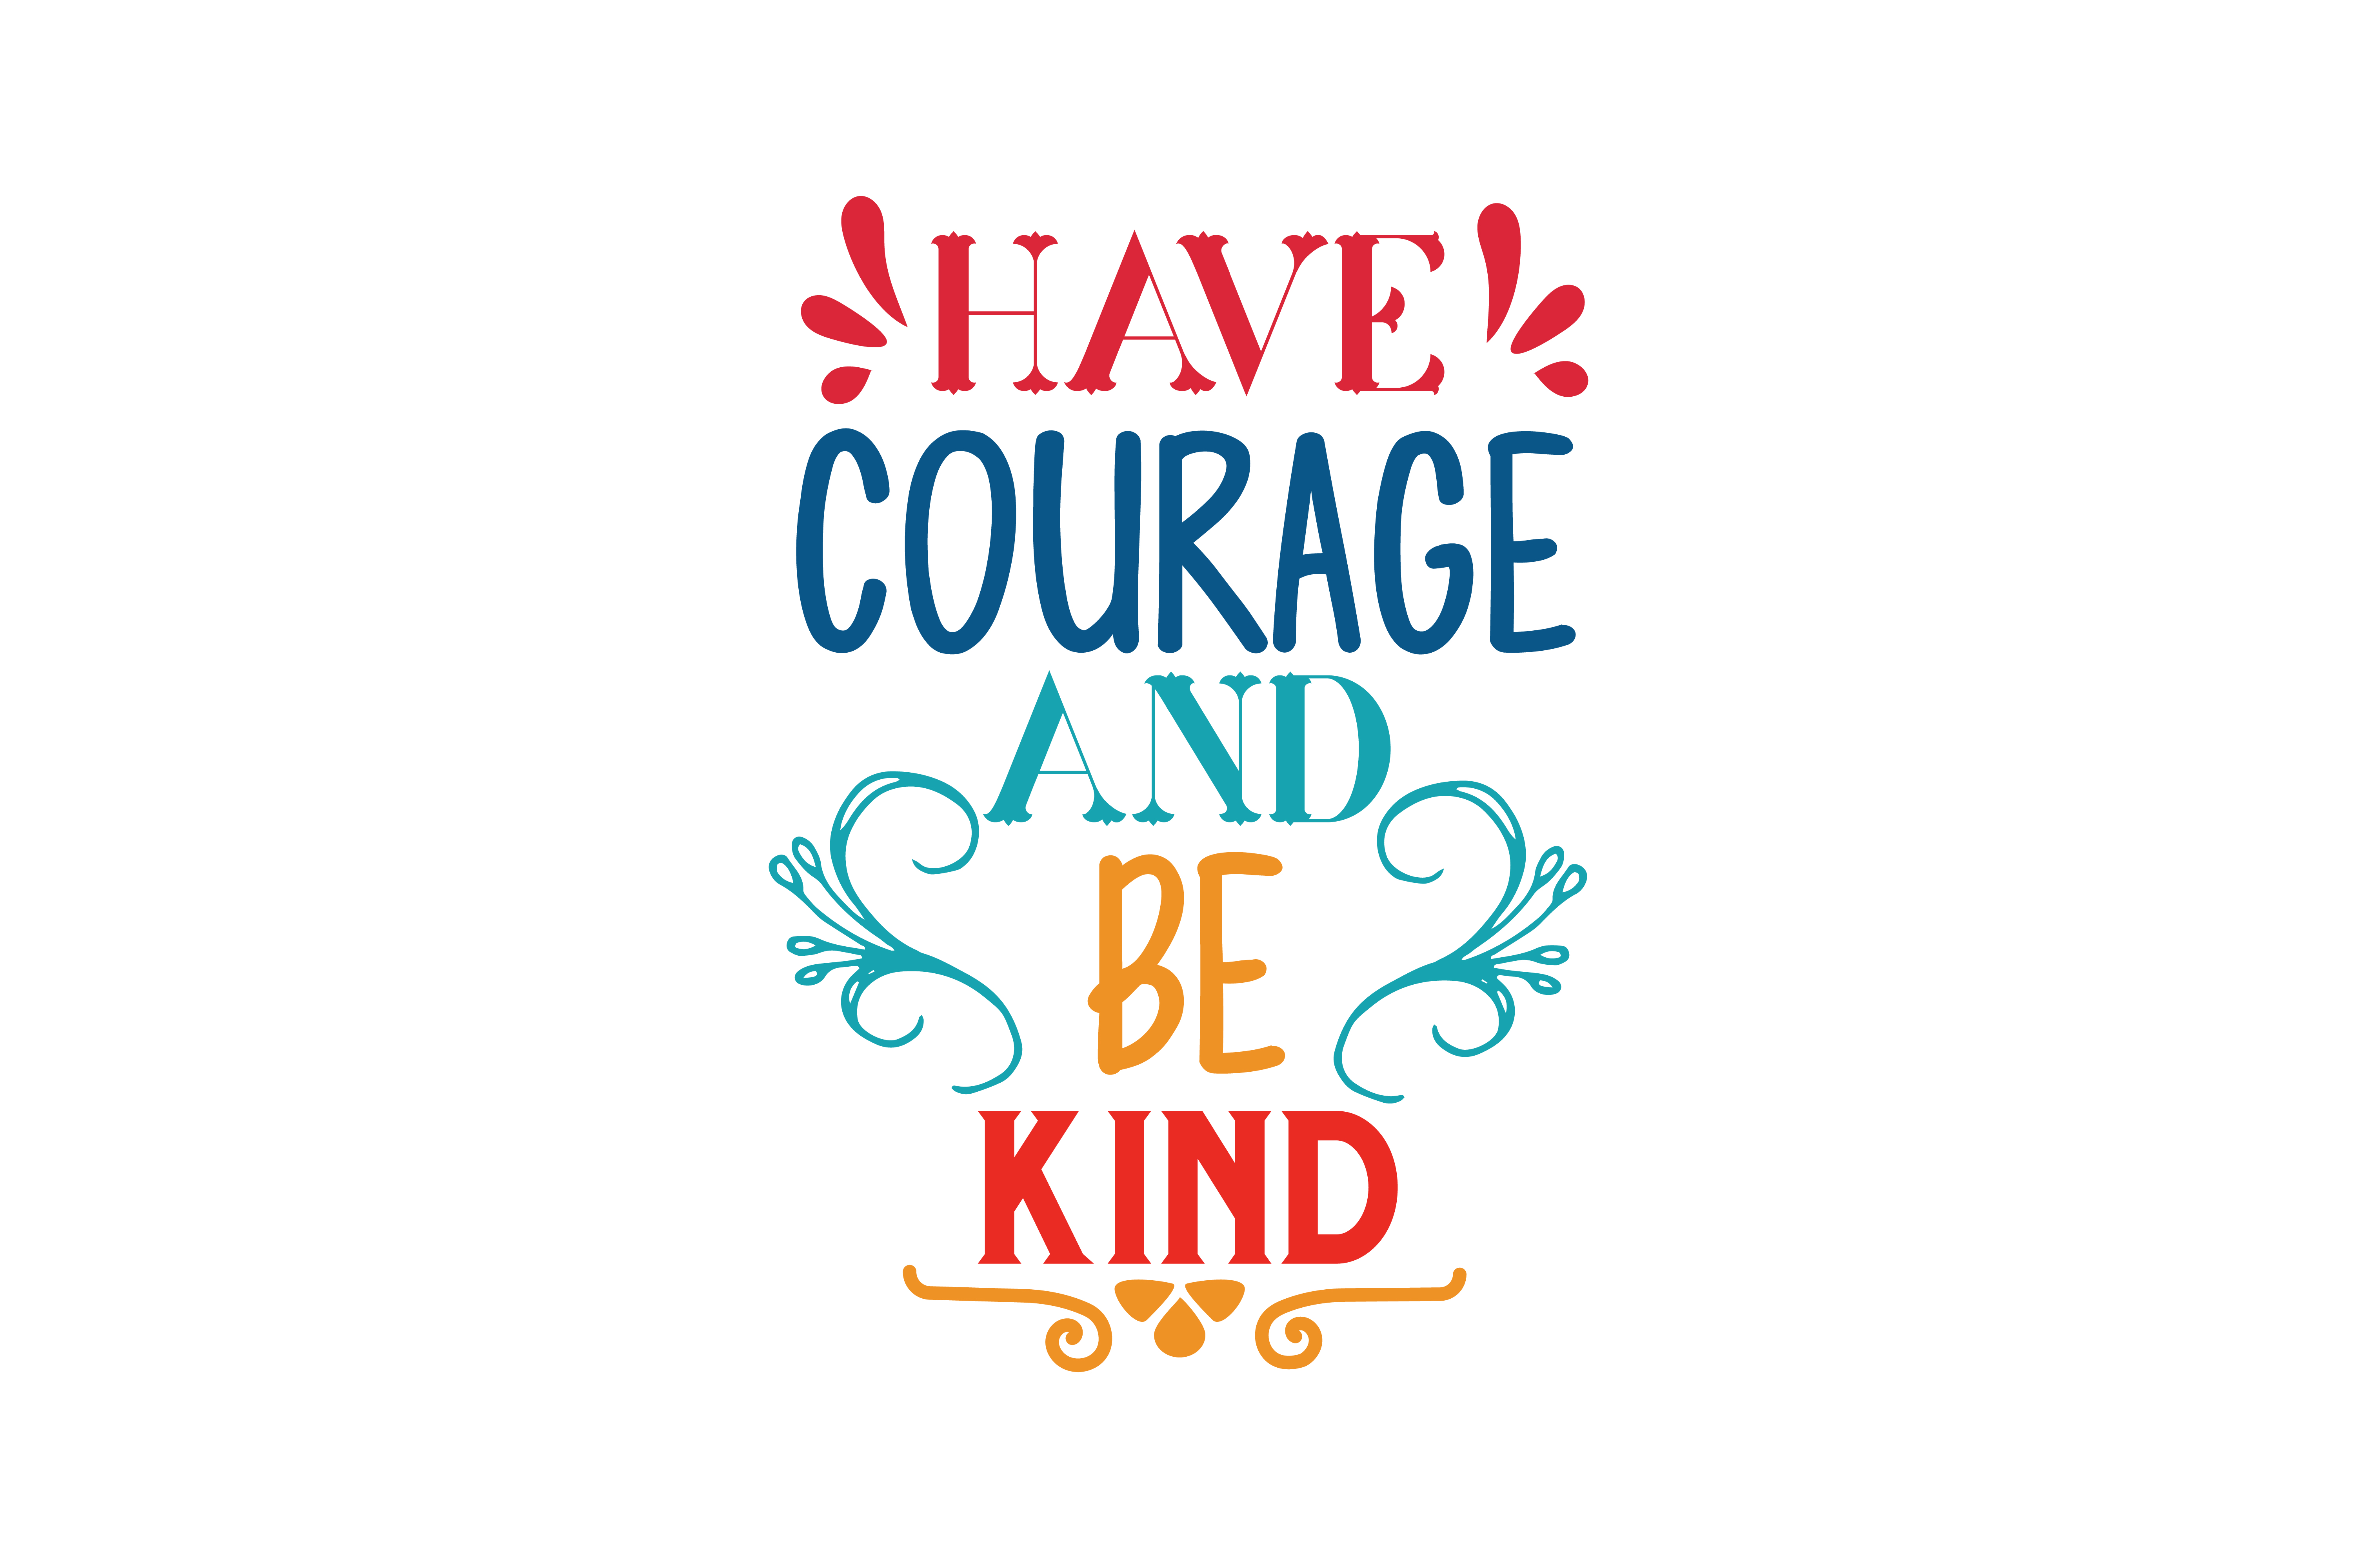 Have Courage And Be Kind Svg Cut Quote Graphic By Thelucky Creative Fabrica